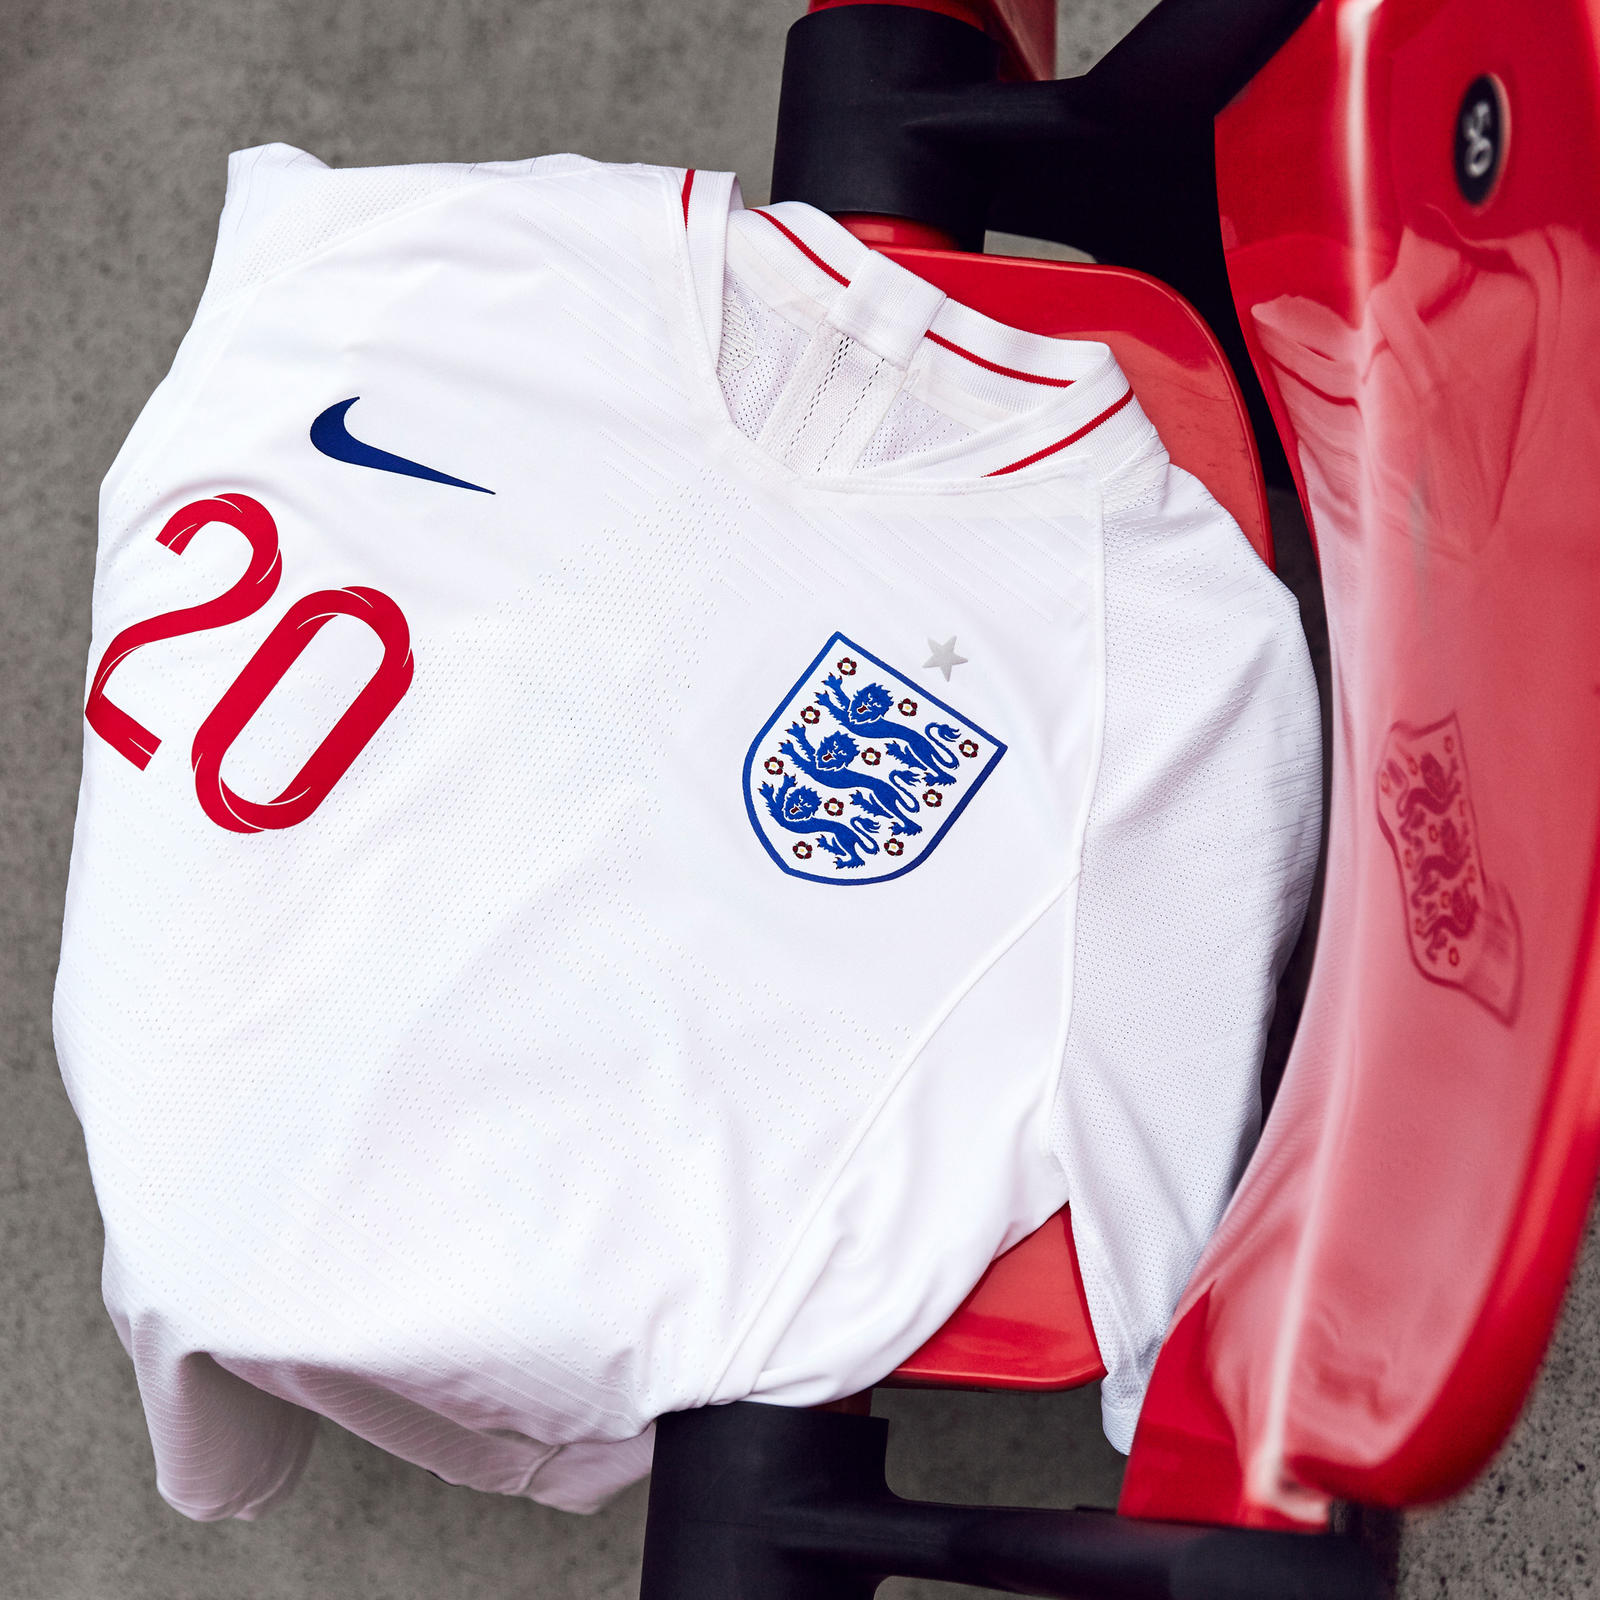 7105ee2a England Home Kit. Indispensably England 17